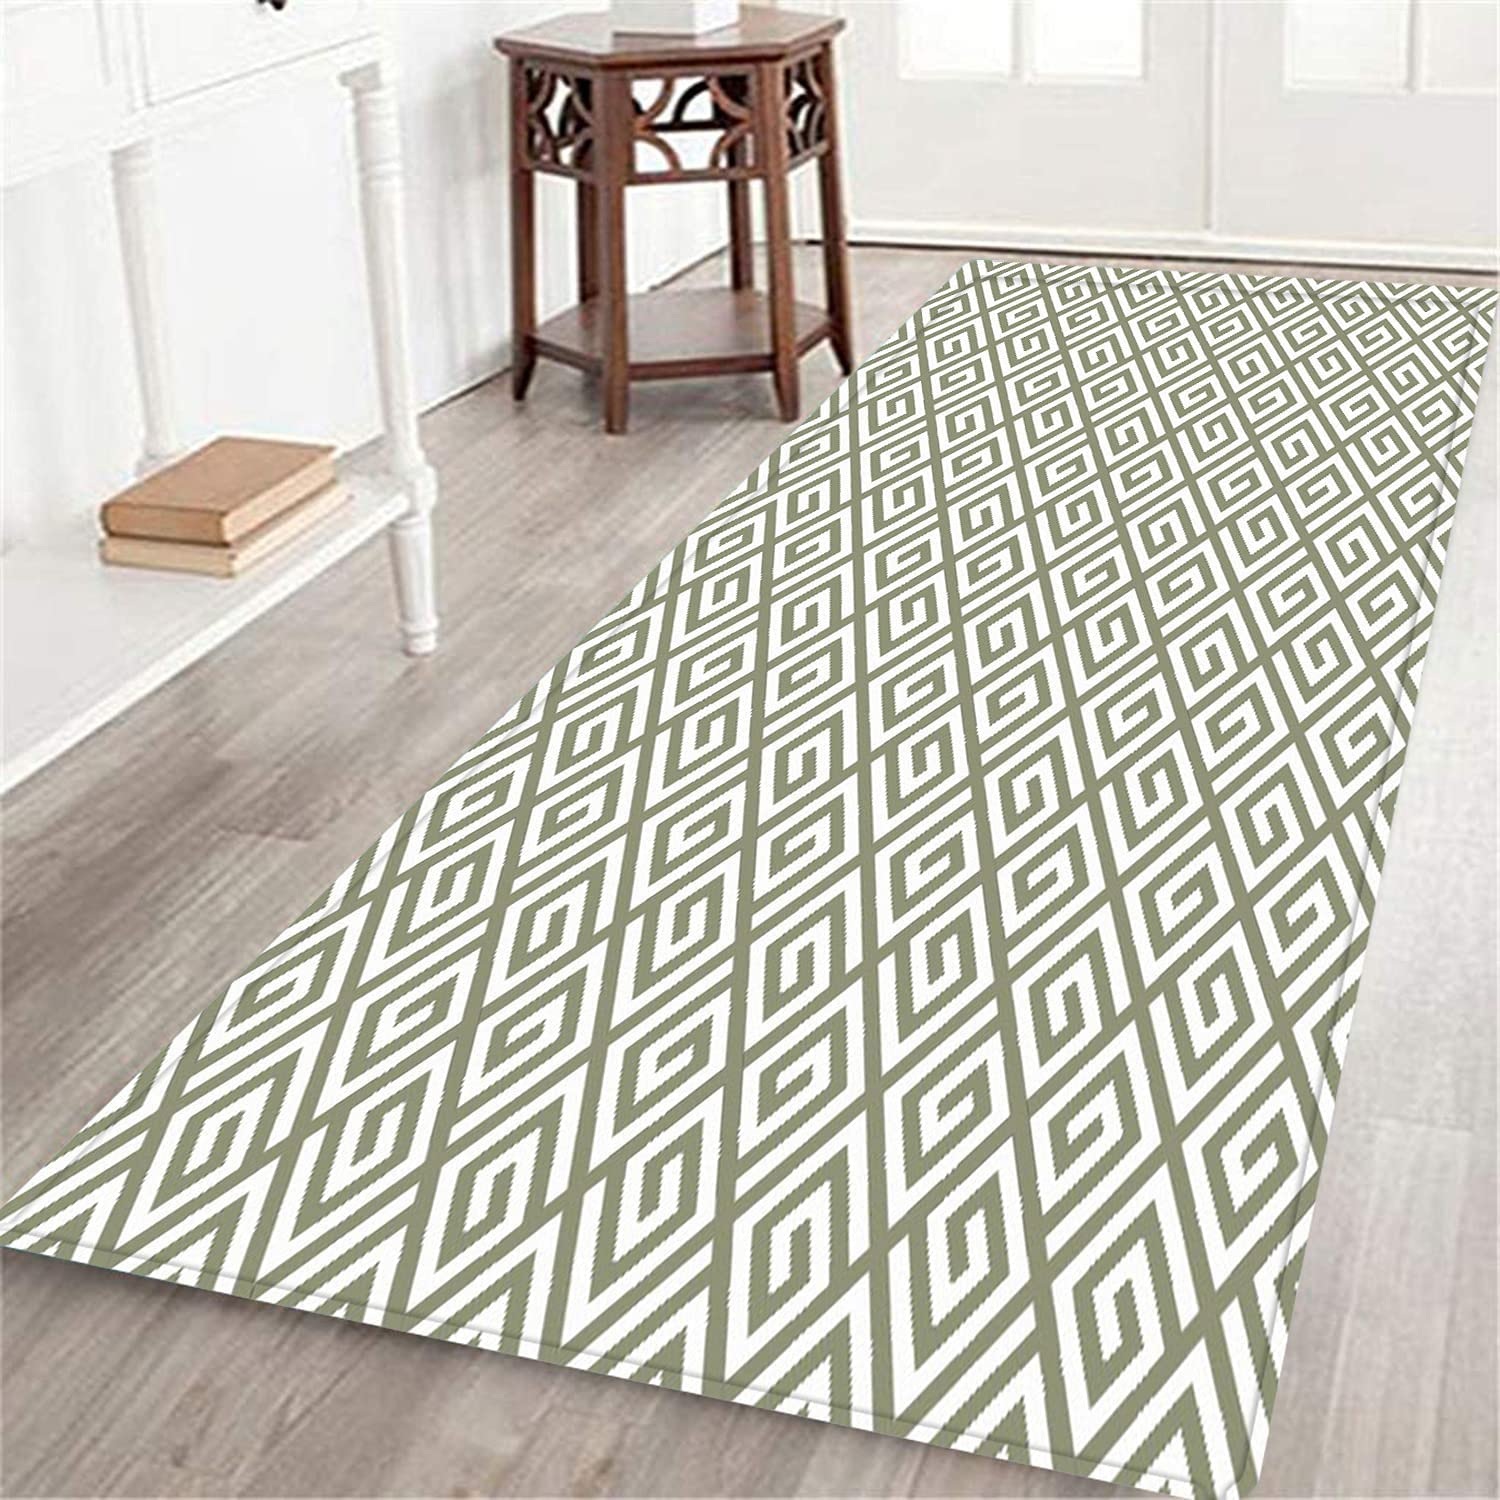 NEW TISAGUER Long Floor Mat with Traditional Geometrical Finally popular brand Composition